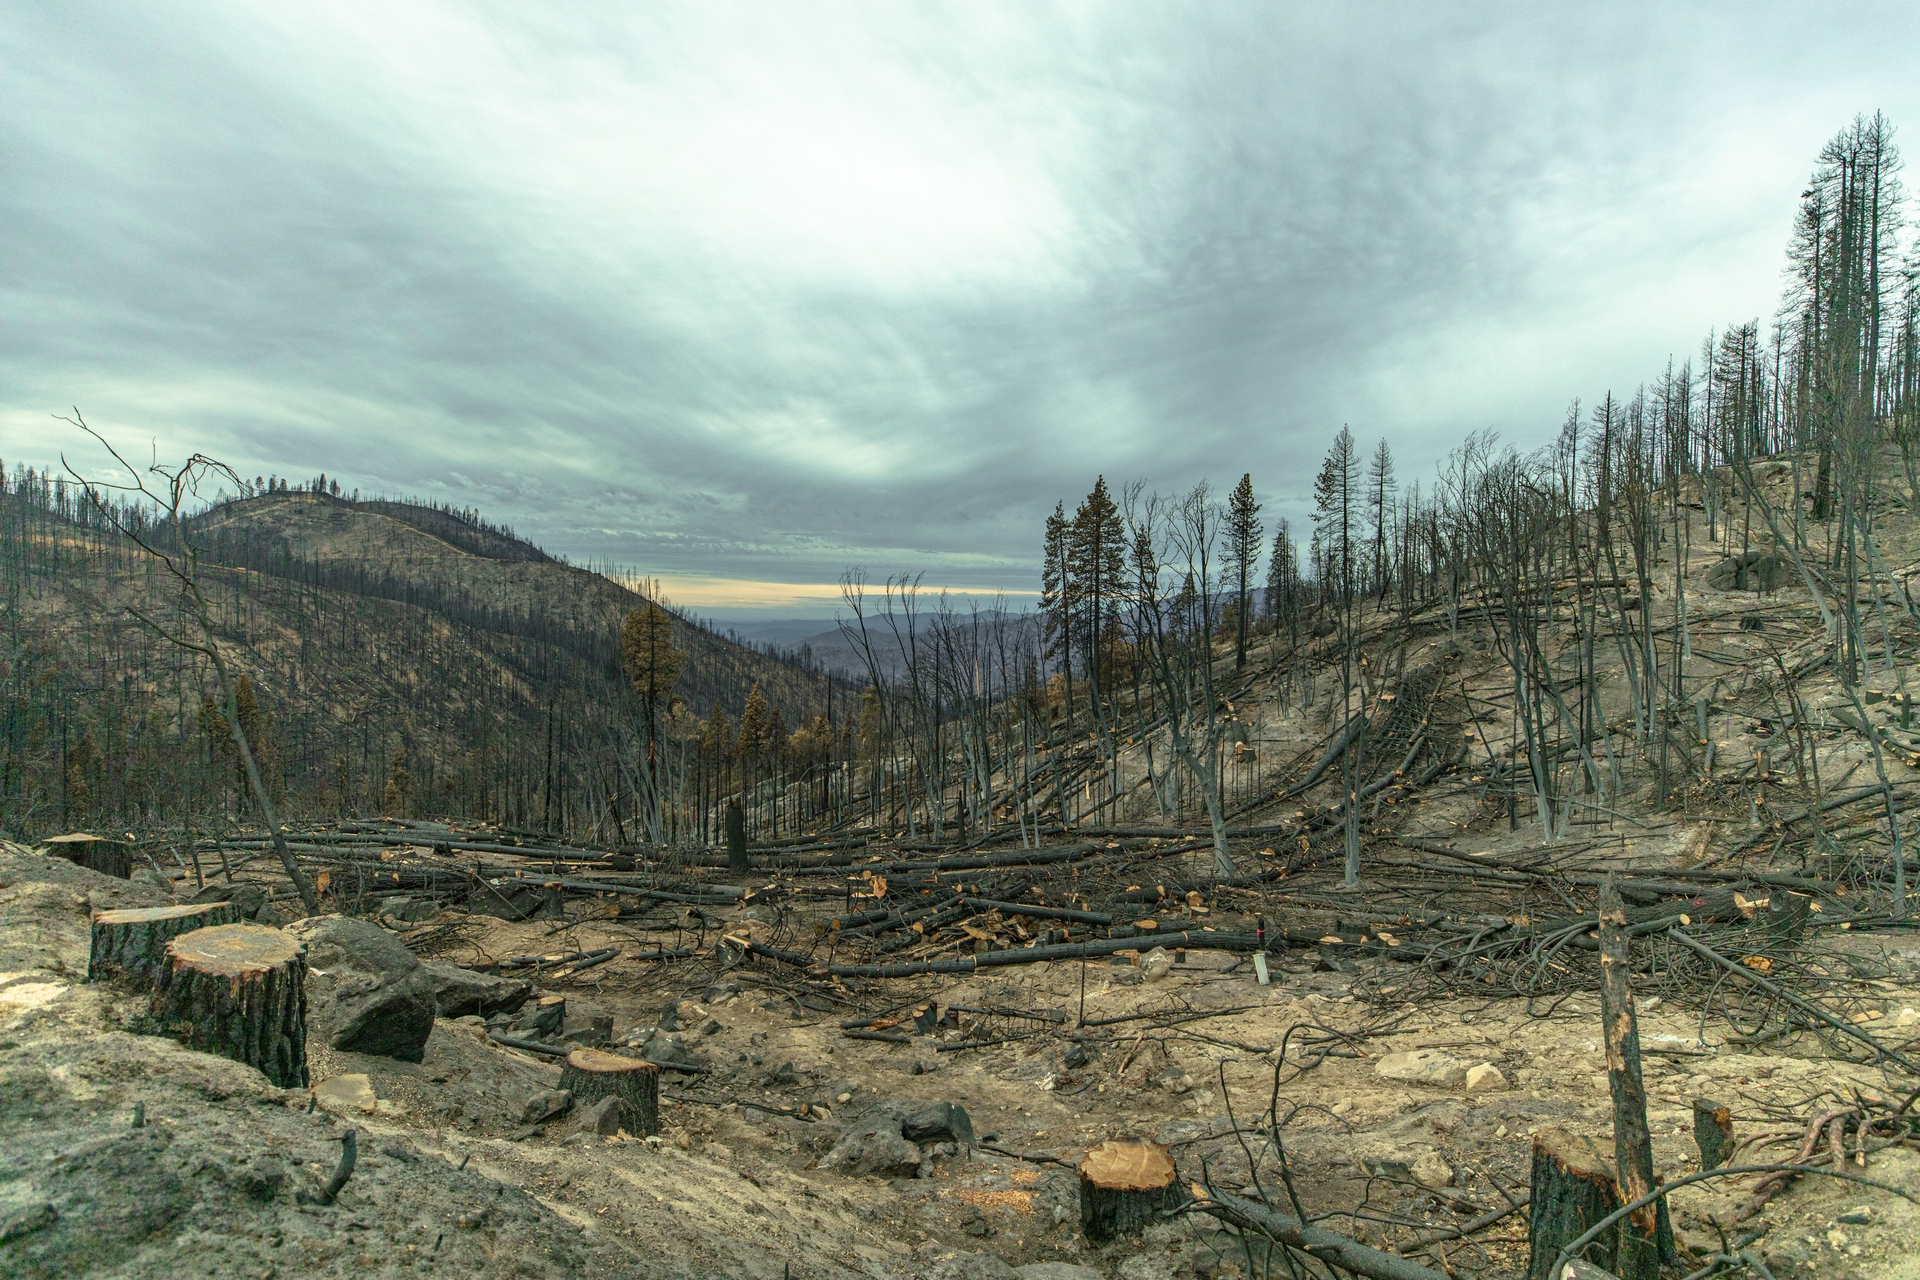 The Creek Fire burned nearly 380,000 acres in the Sierra National Forest last September through December.